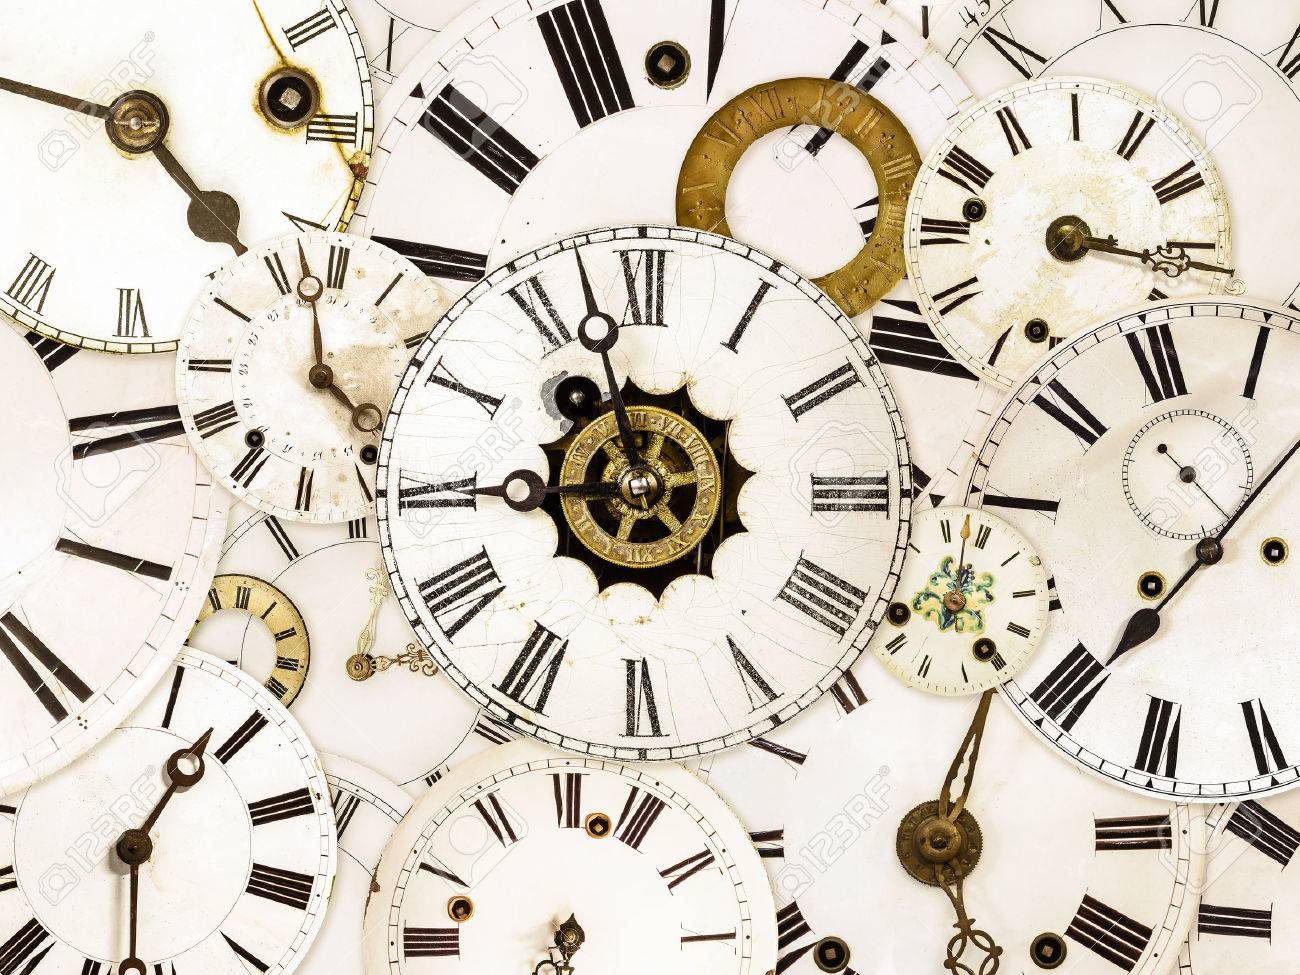 Wall clock images stock pictures royalty free wall clock photos large set of various vintage clock faces amipublicfo Gallery